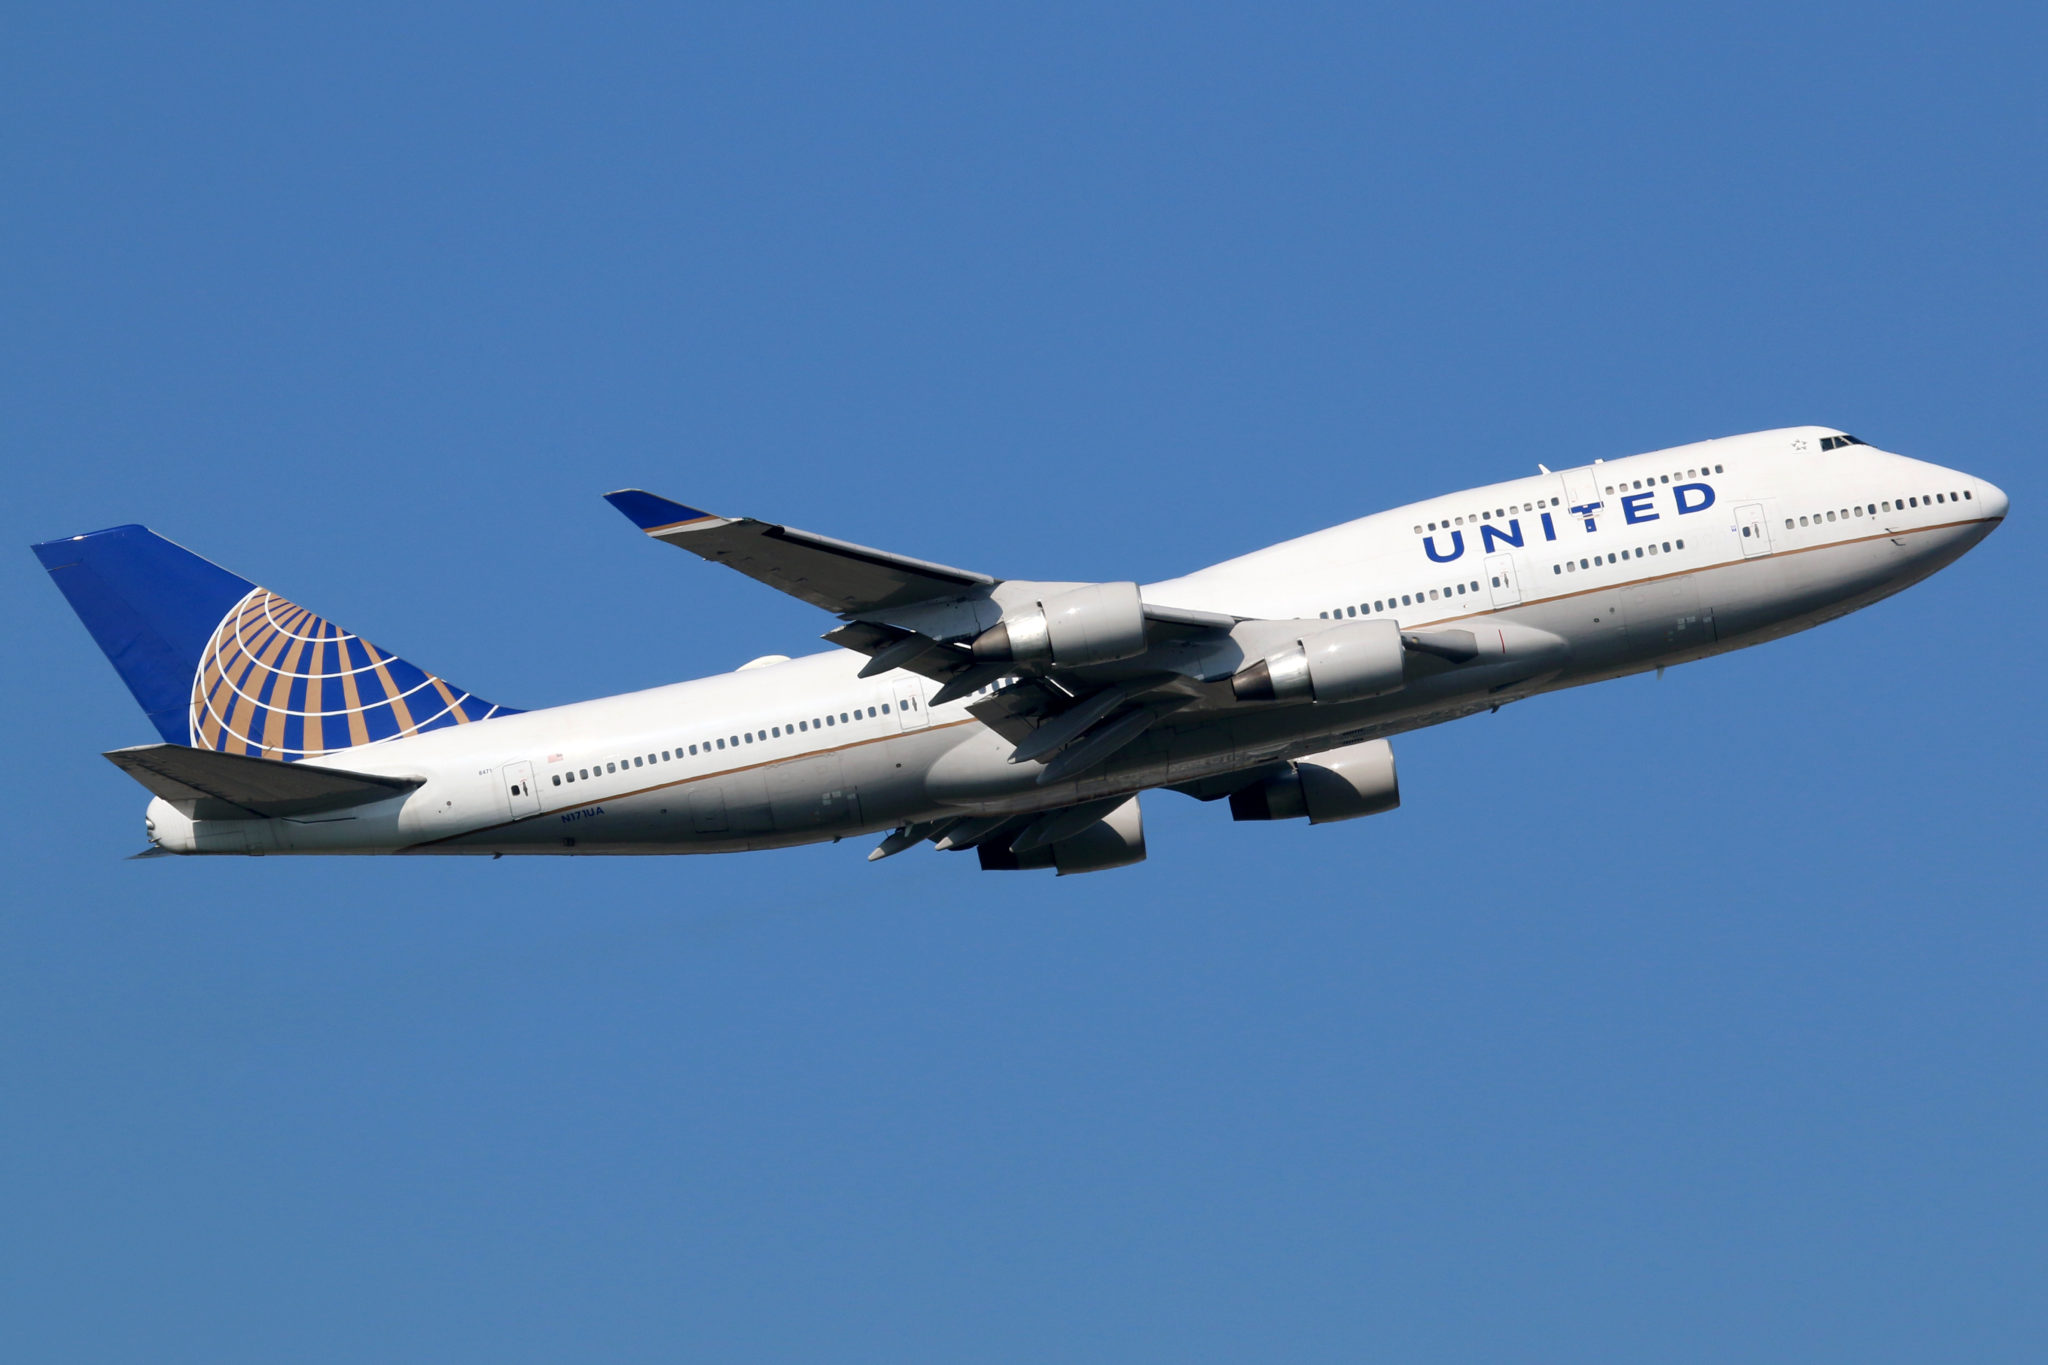 United Airlines to lay off 16,000 workers